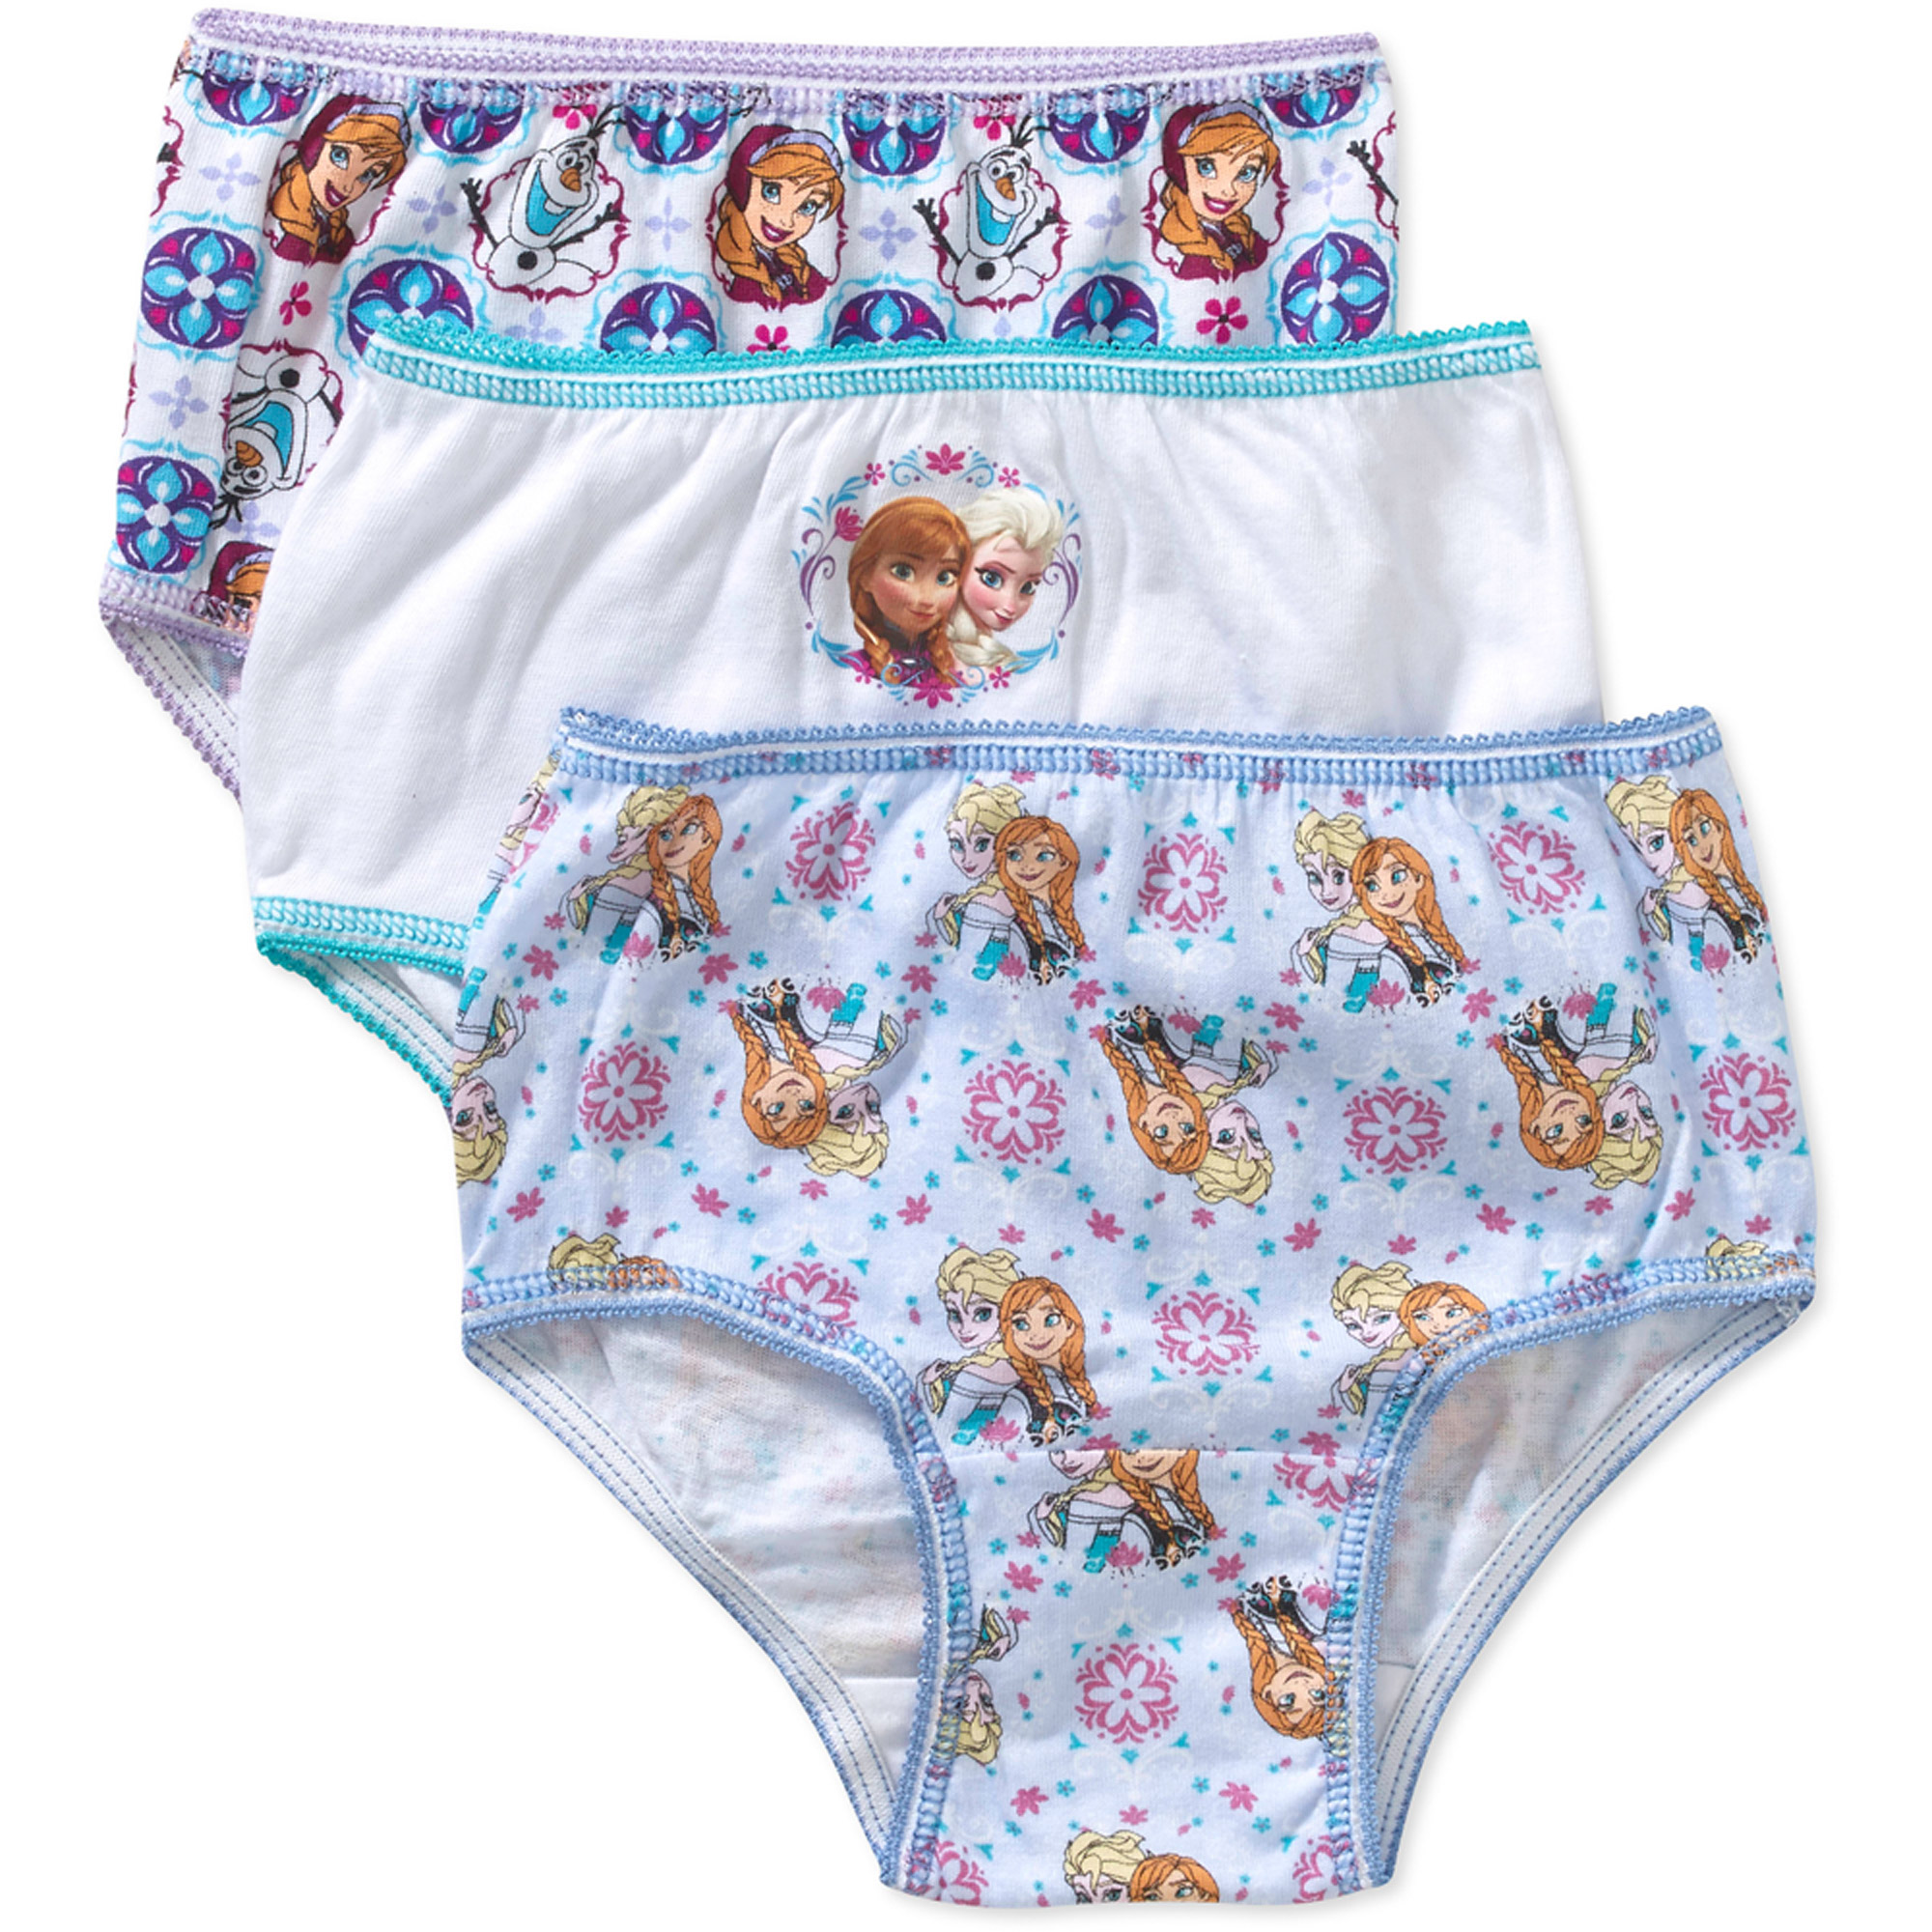 Frozen Toddler Girls Underwear, 3 Pack